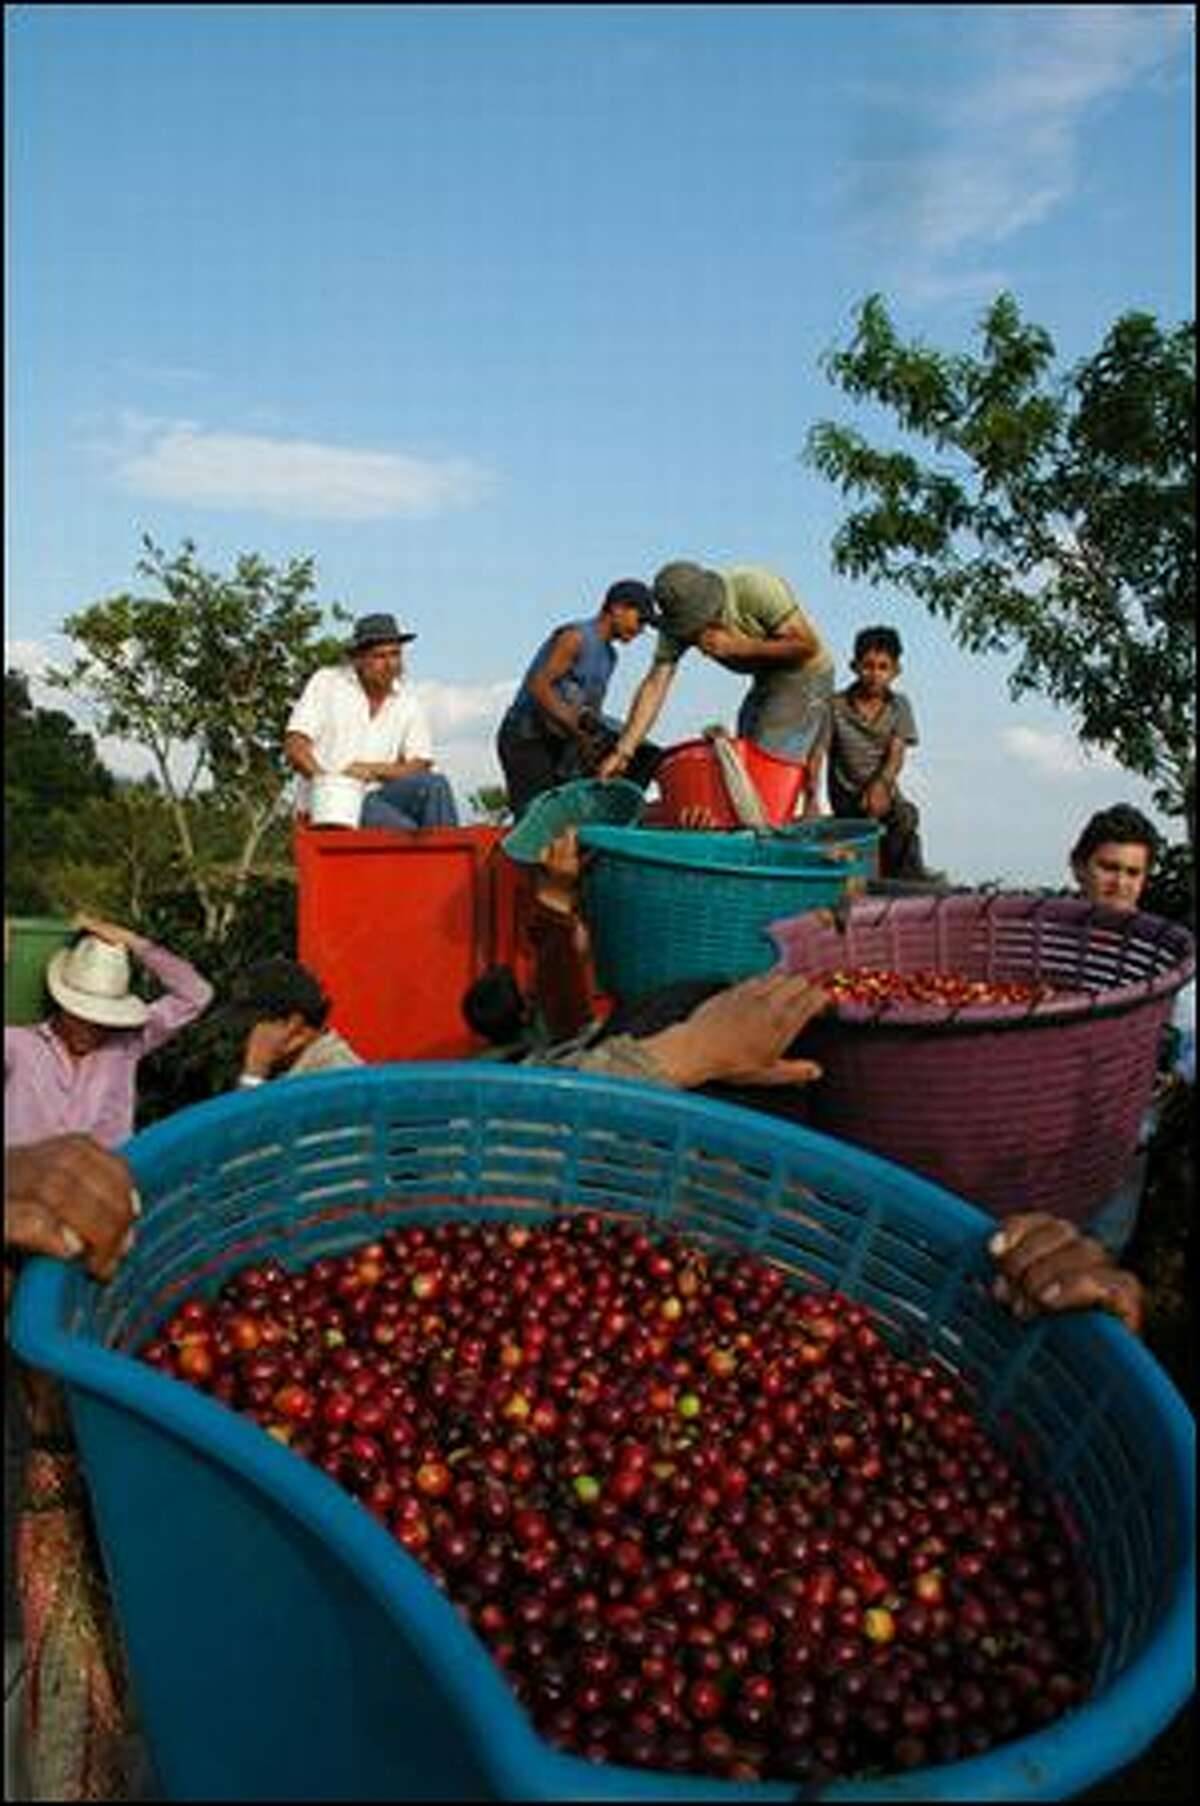 Just-picked coffee